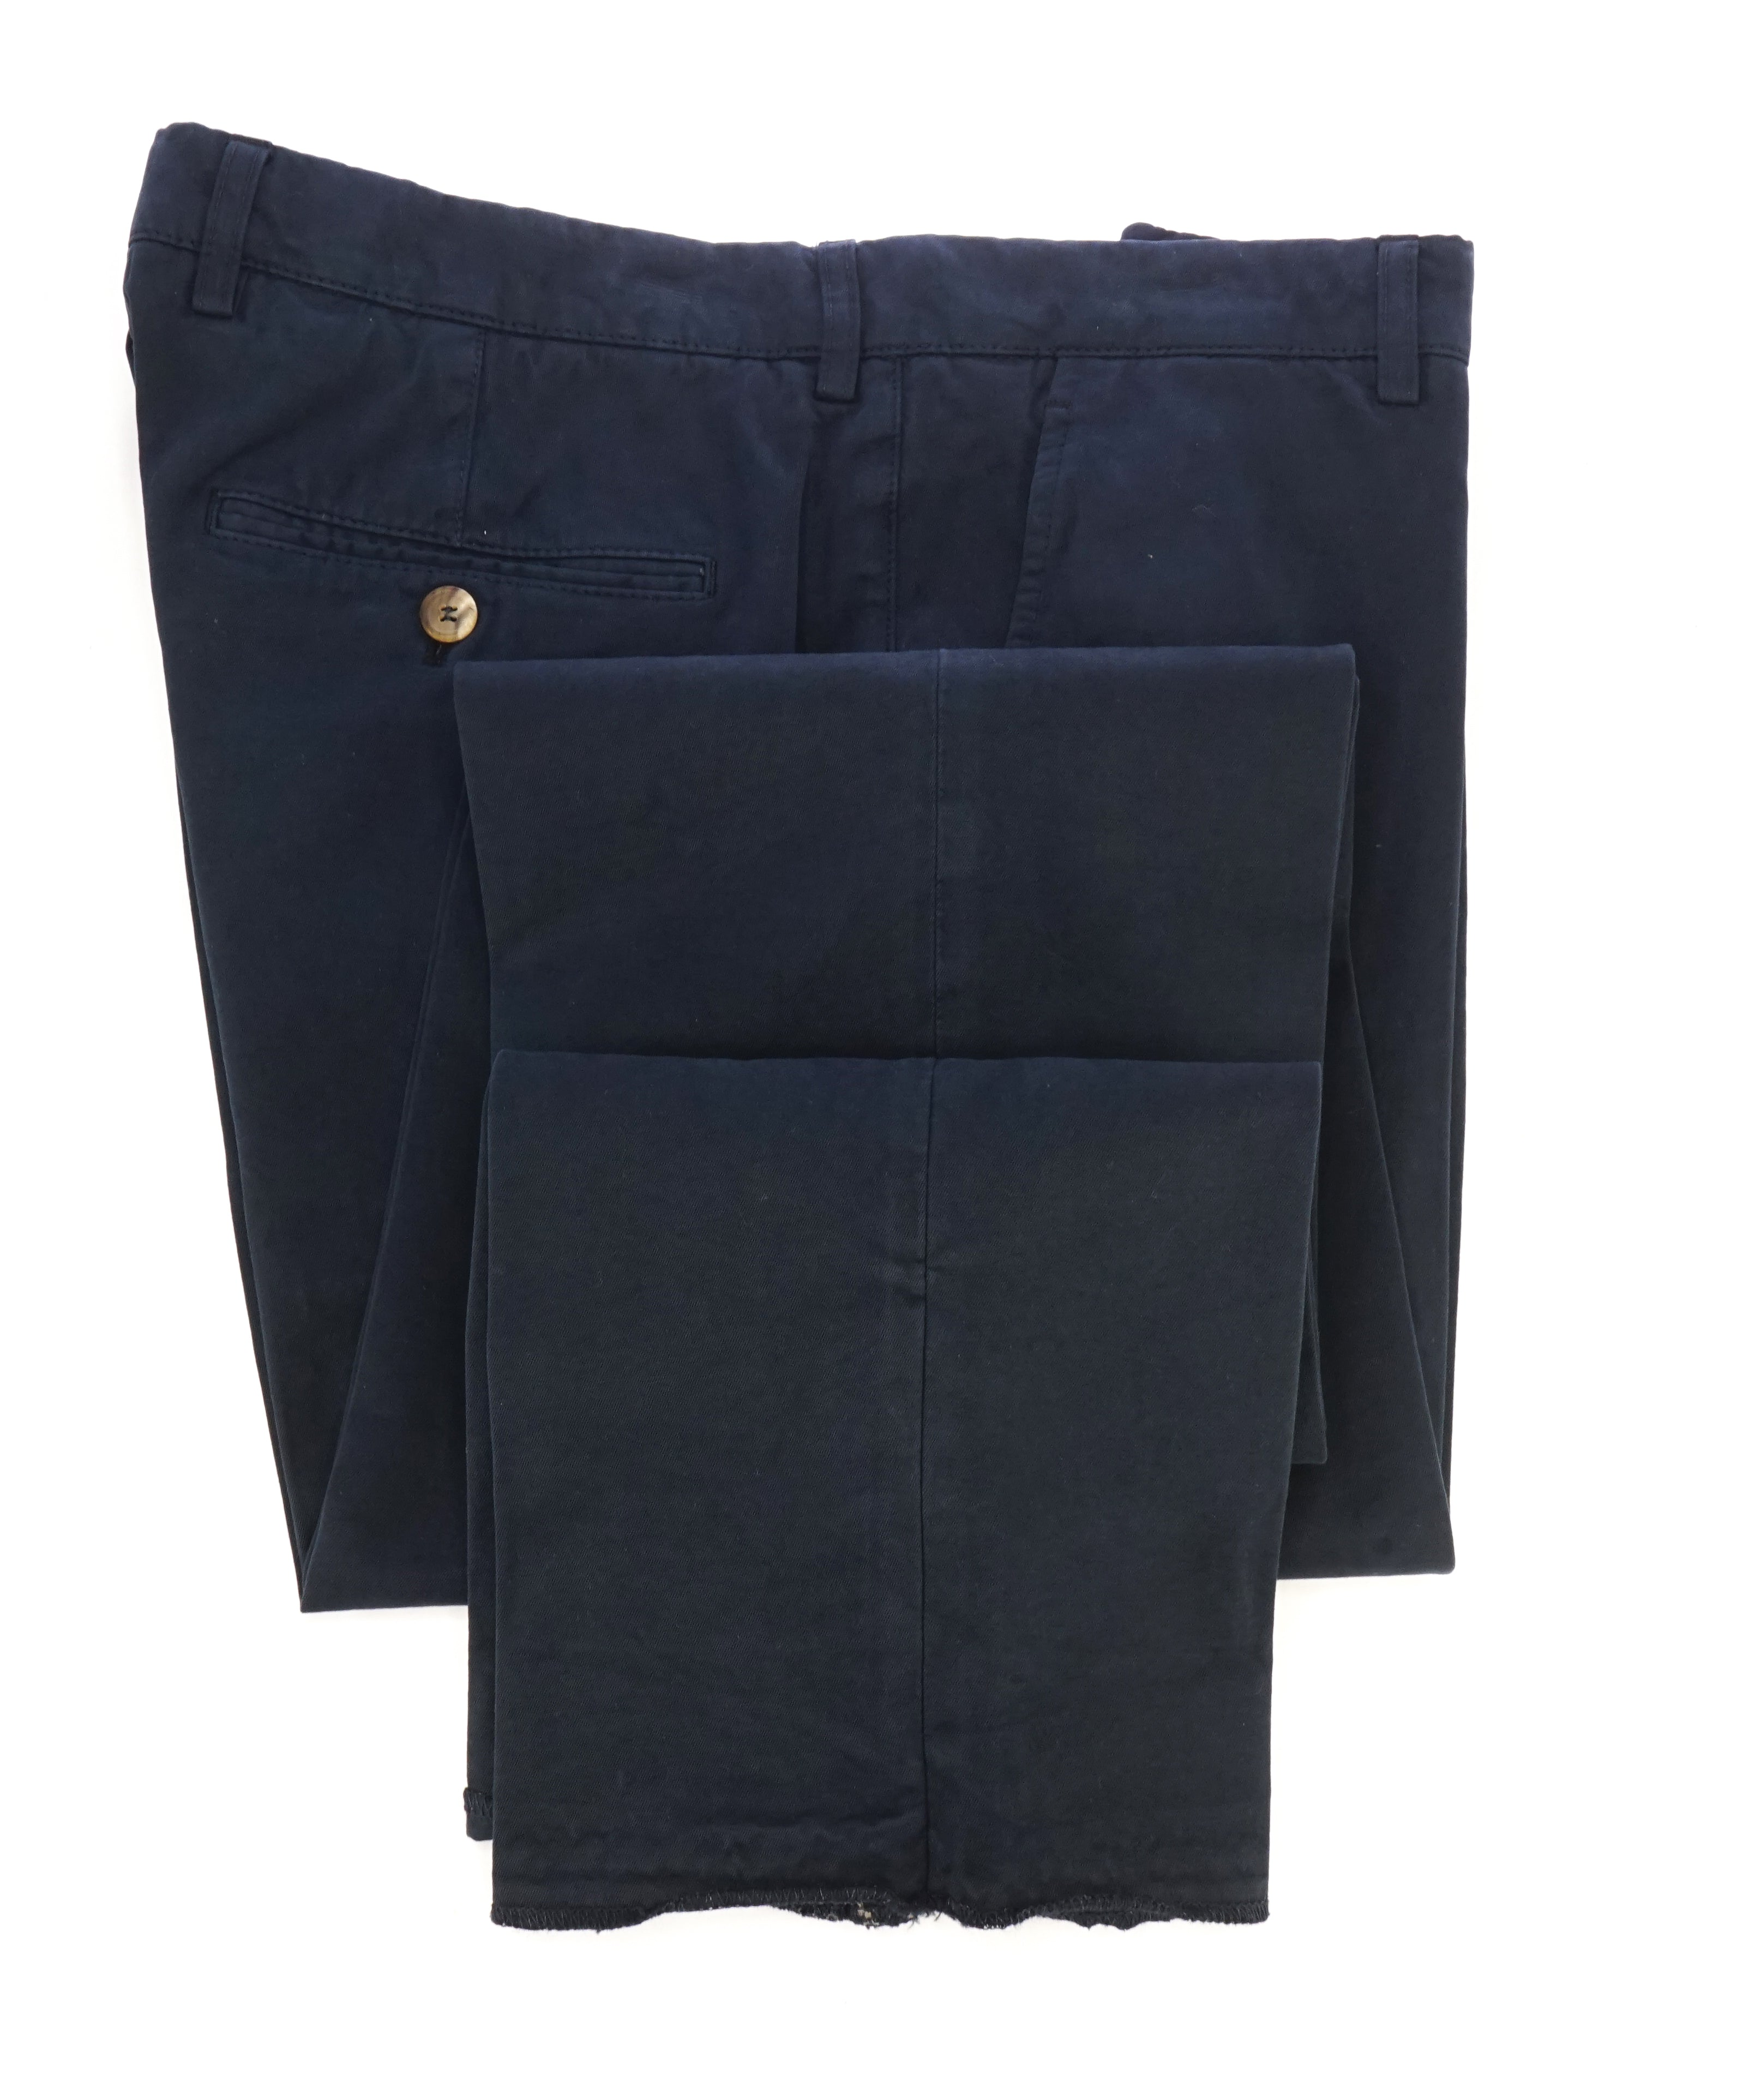 BRUNELLO CUCINELLI - Weathered/Distressed Navy Blue Chino Cotton Pants - 32W